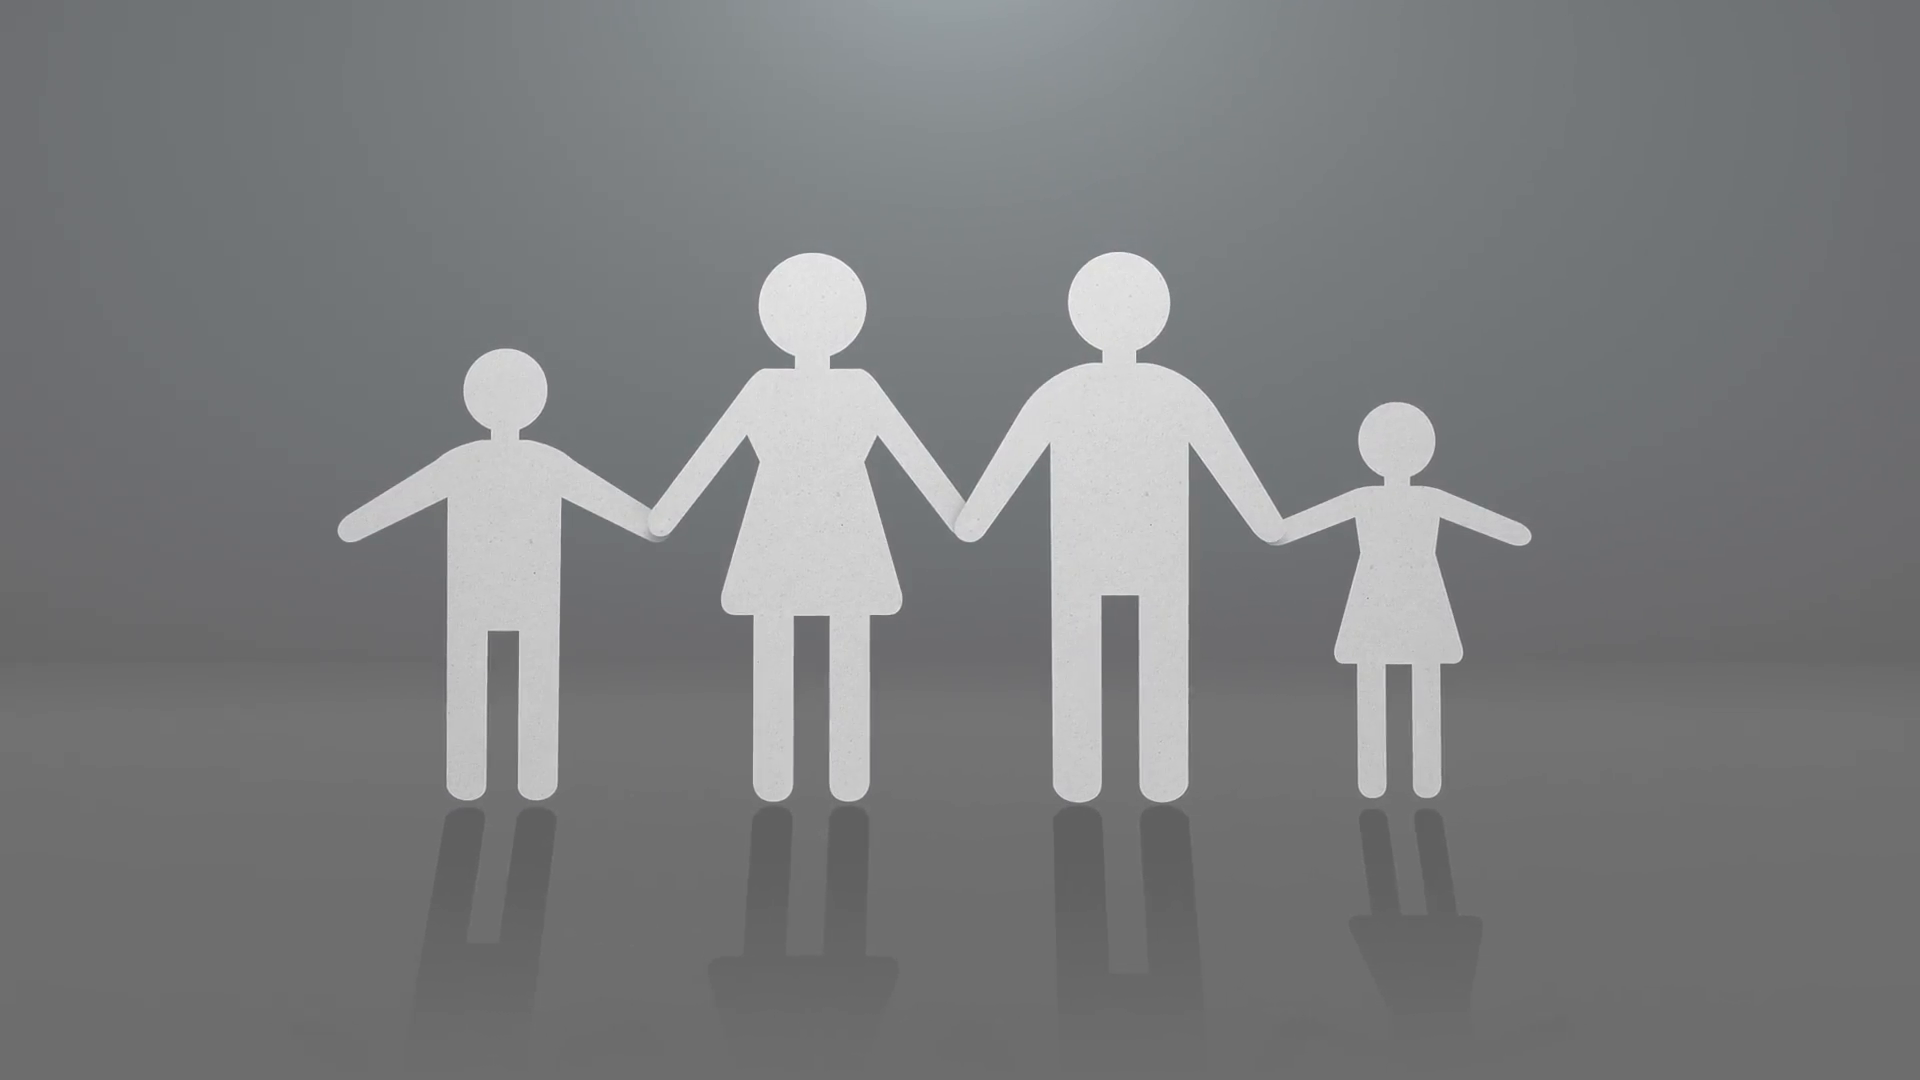 family-paper-dolls-hand-in-hand-included-alpha_hvjhrywi__F0006.png